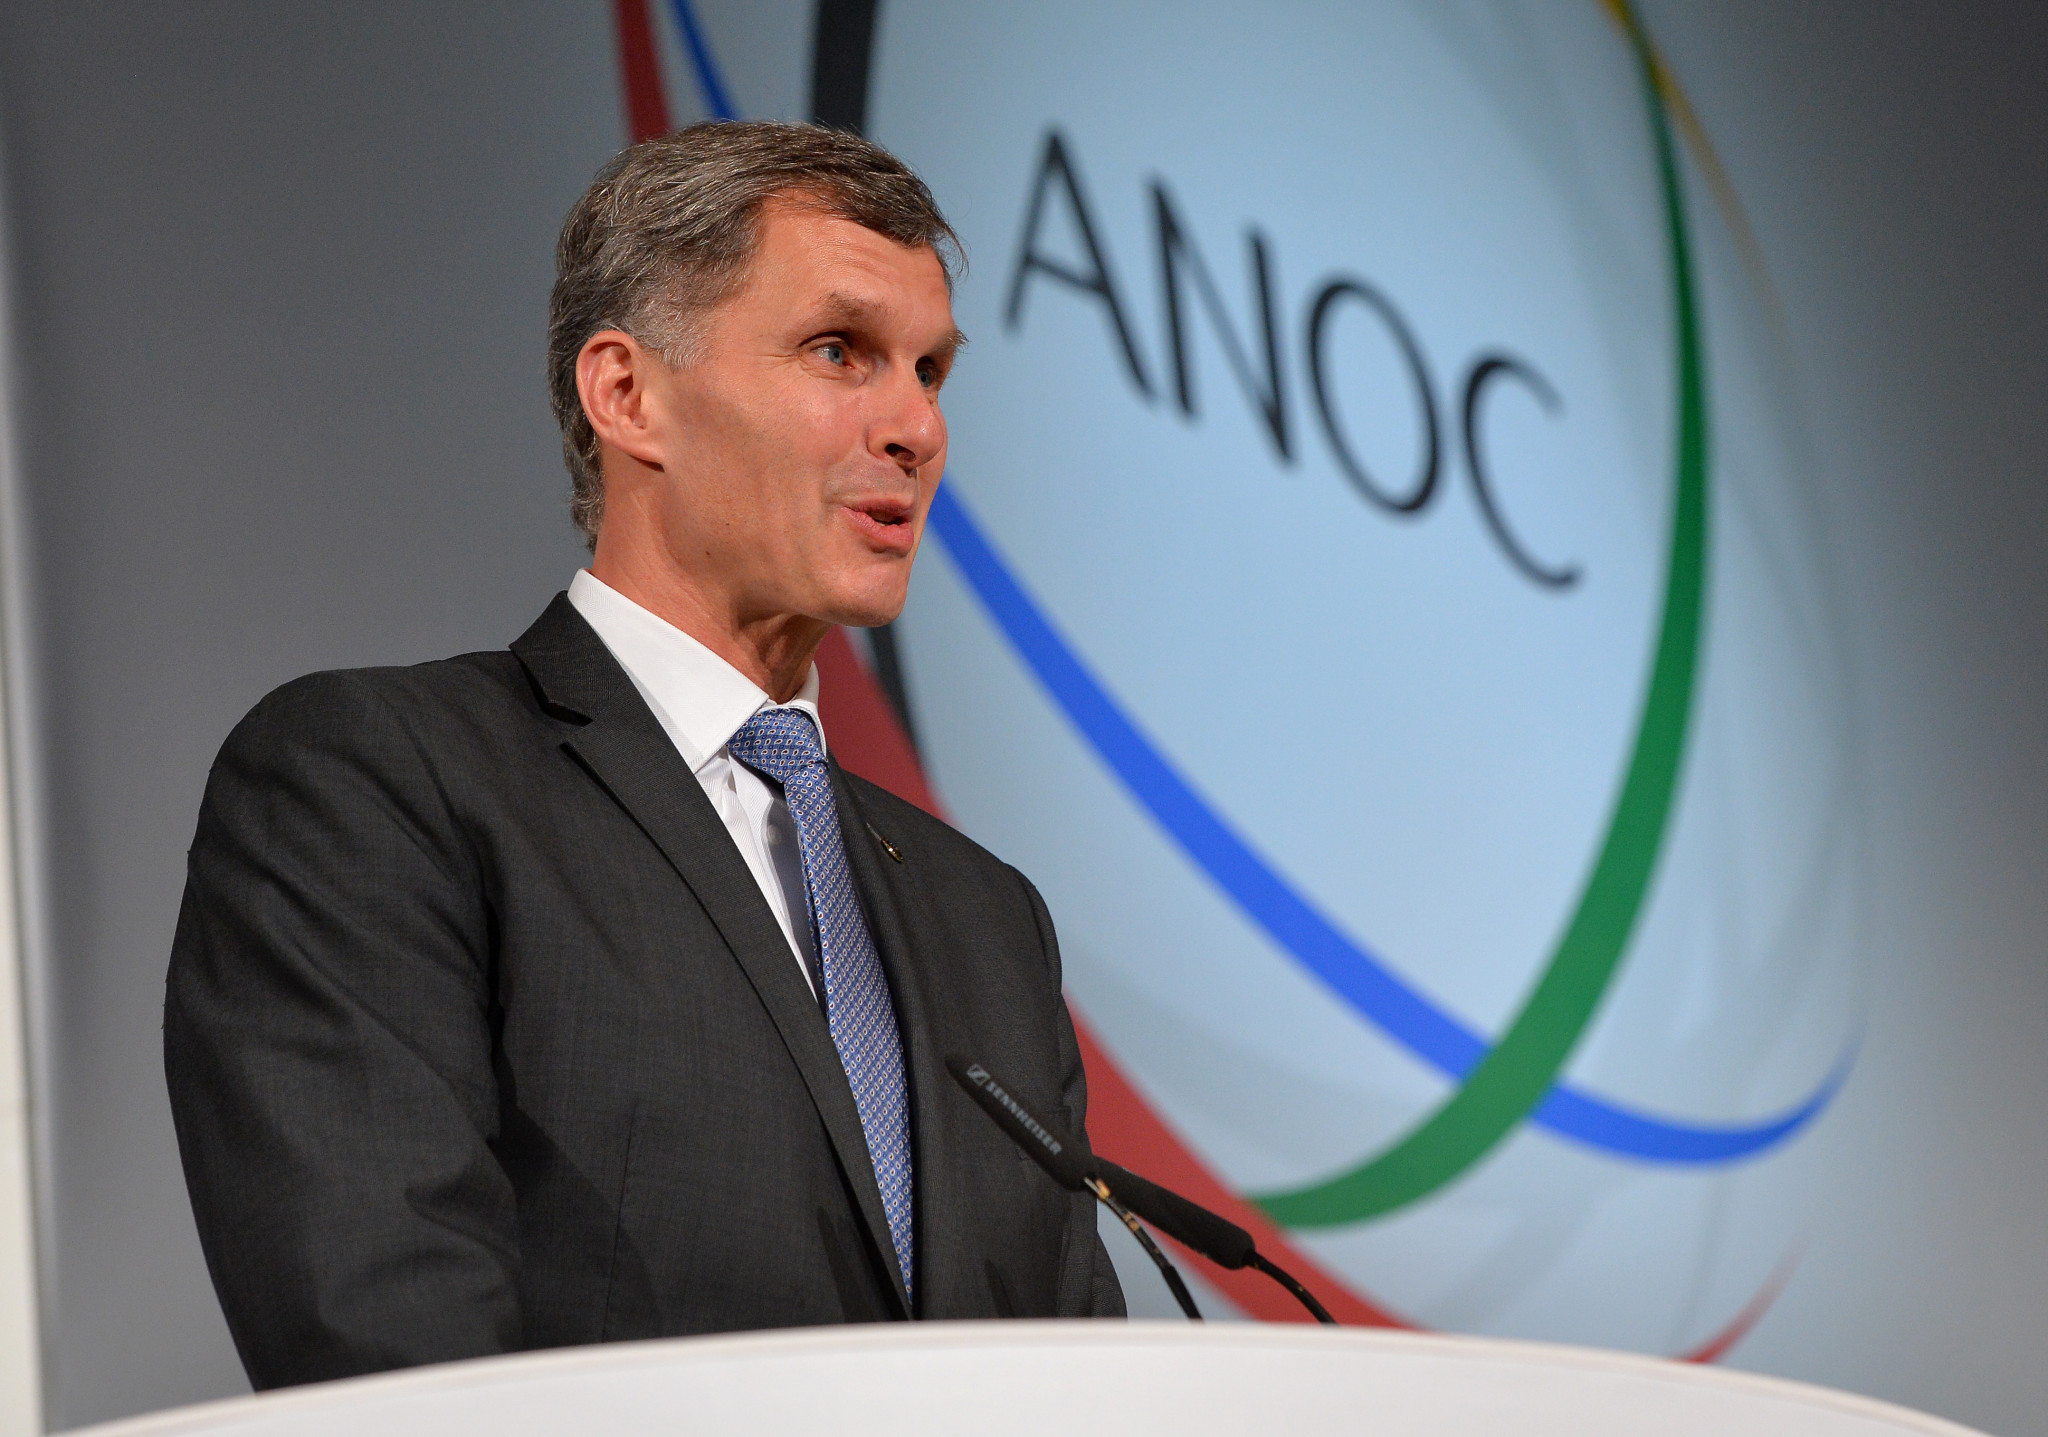 Kejval positive about chances of becoming IOC member despite financial allegations